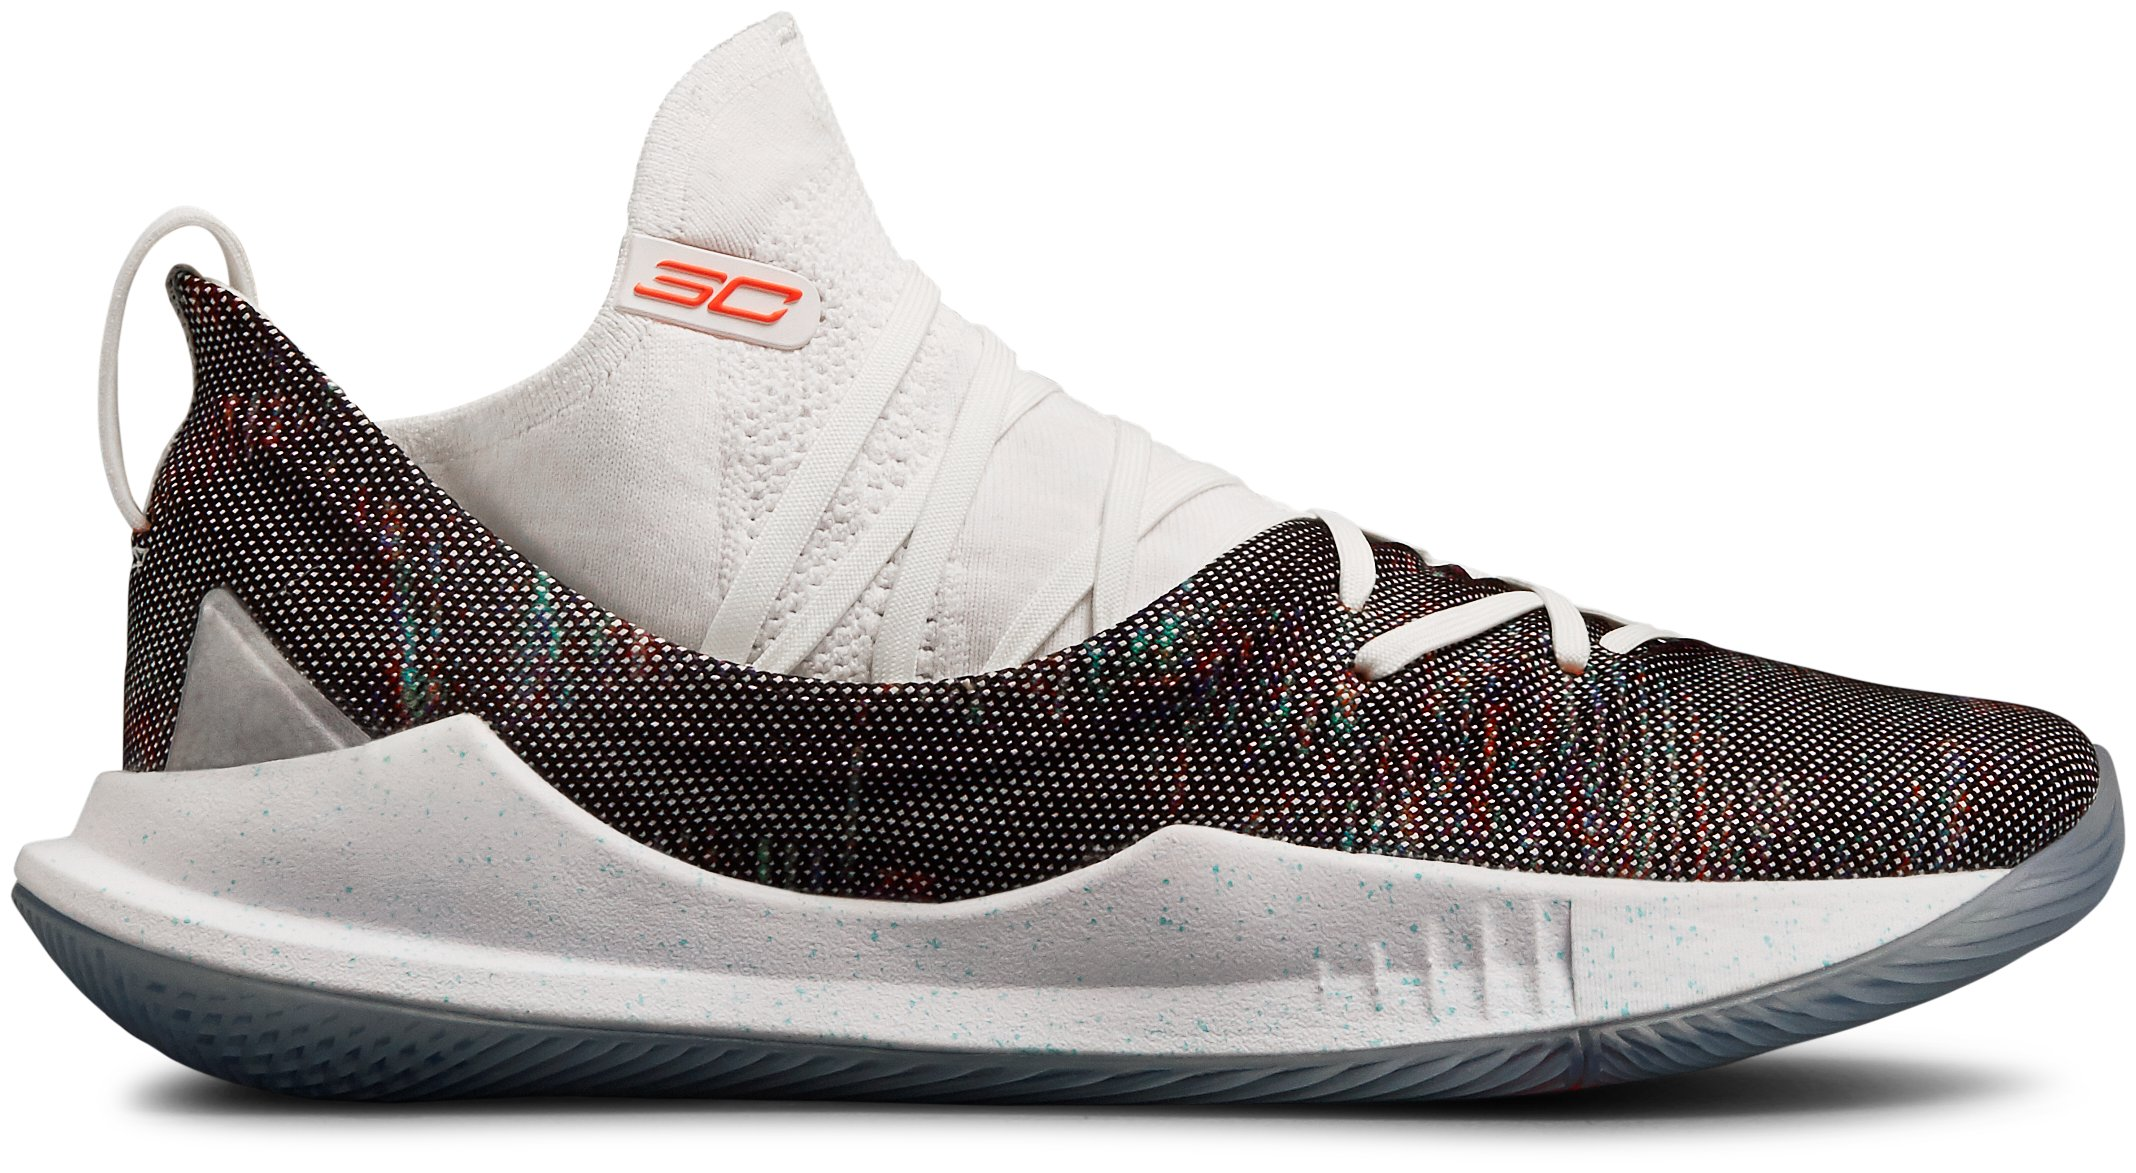 Zapato de basquetbol UA Curry 5 para hombre, 360 degree view